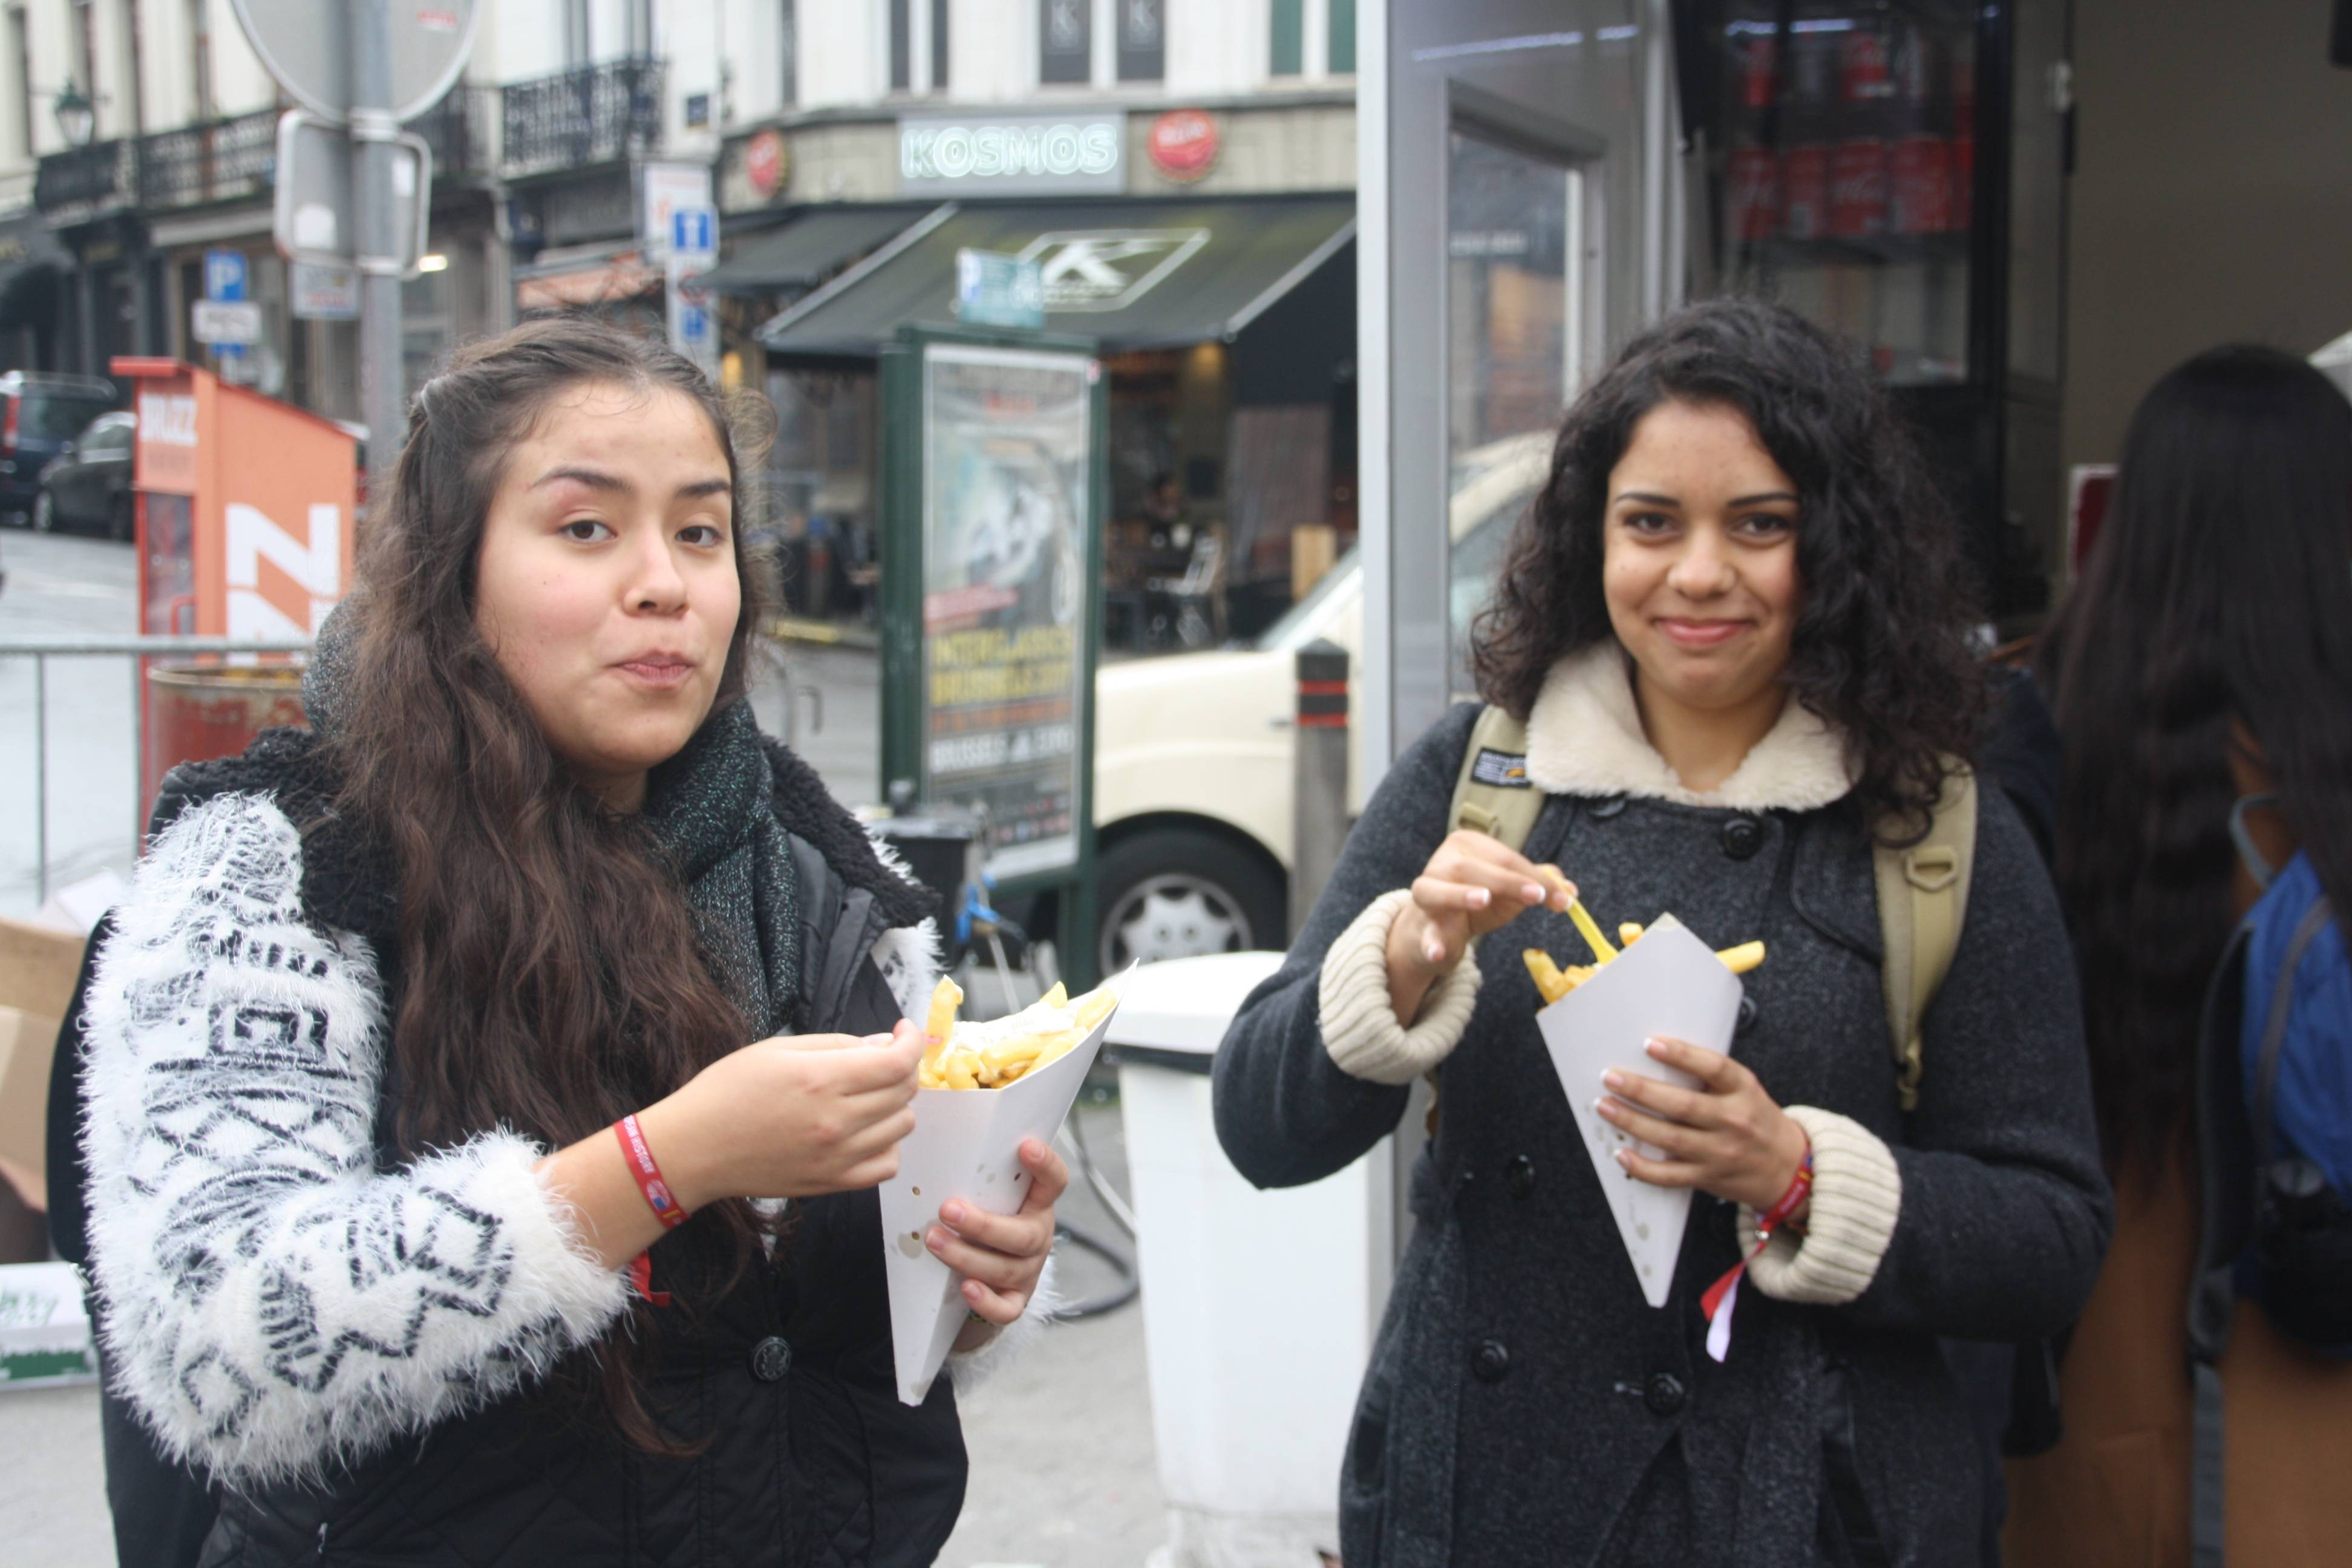 Two students about to eat belgian fries